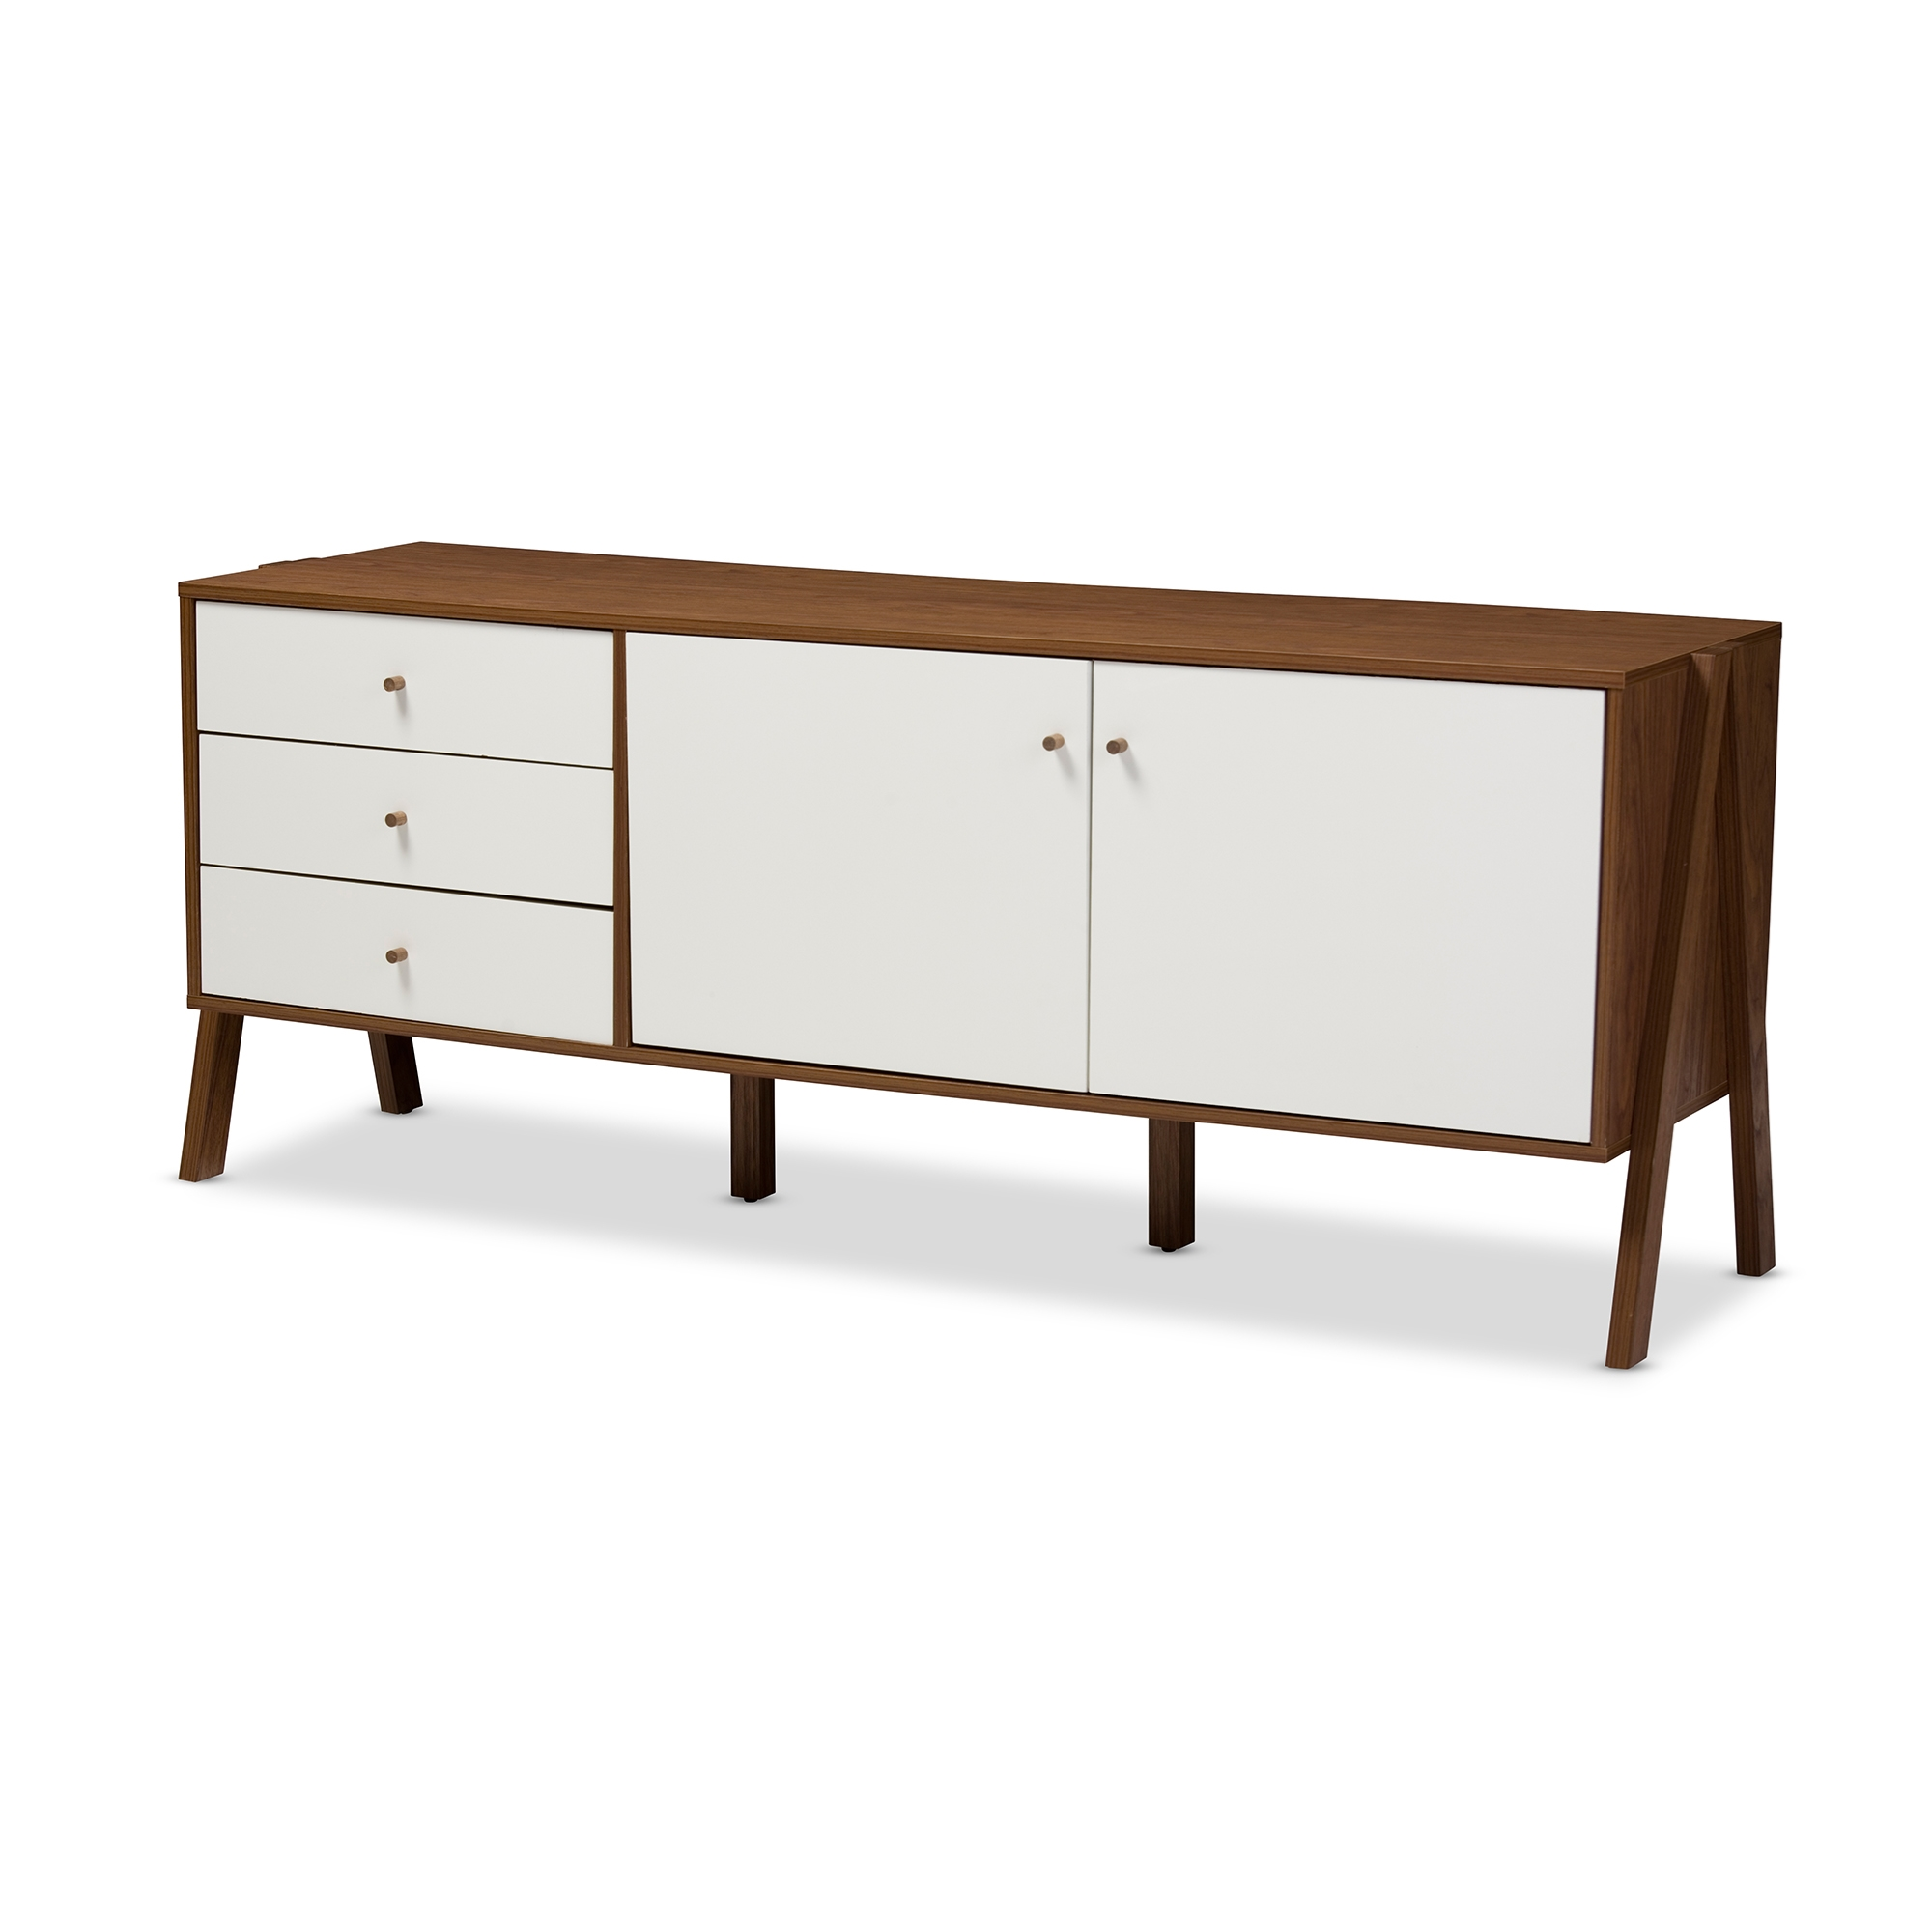 scandinavian furniture style. baxton studio harlow midcentury modern scandinavian style white and walnut wood sideboard storage cabinet furniture b